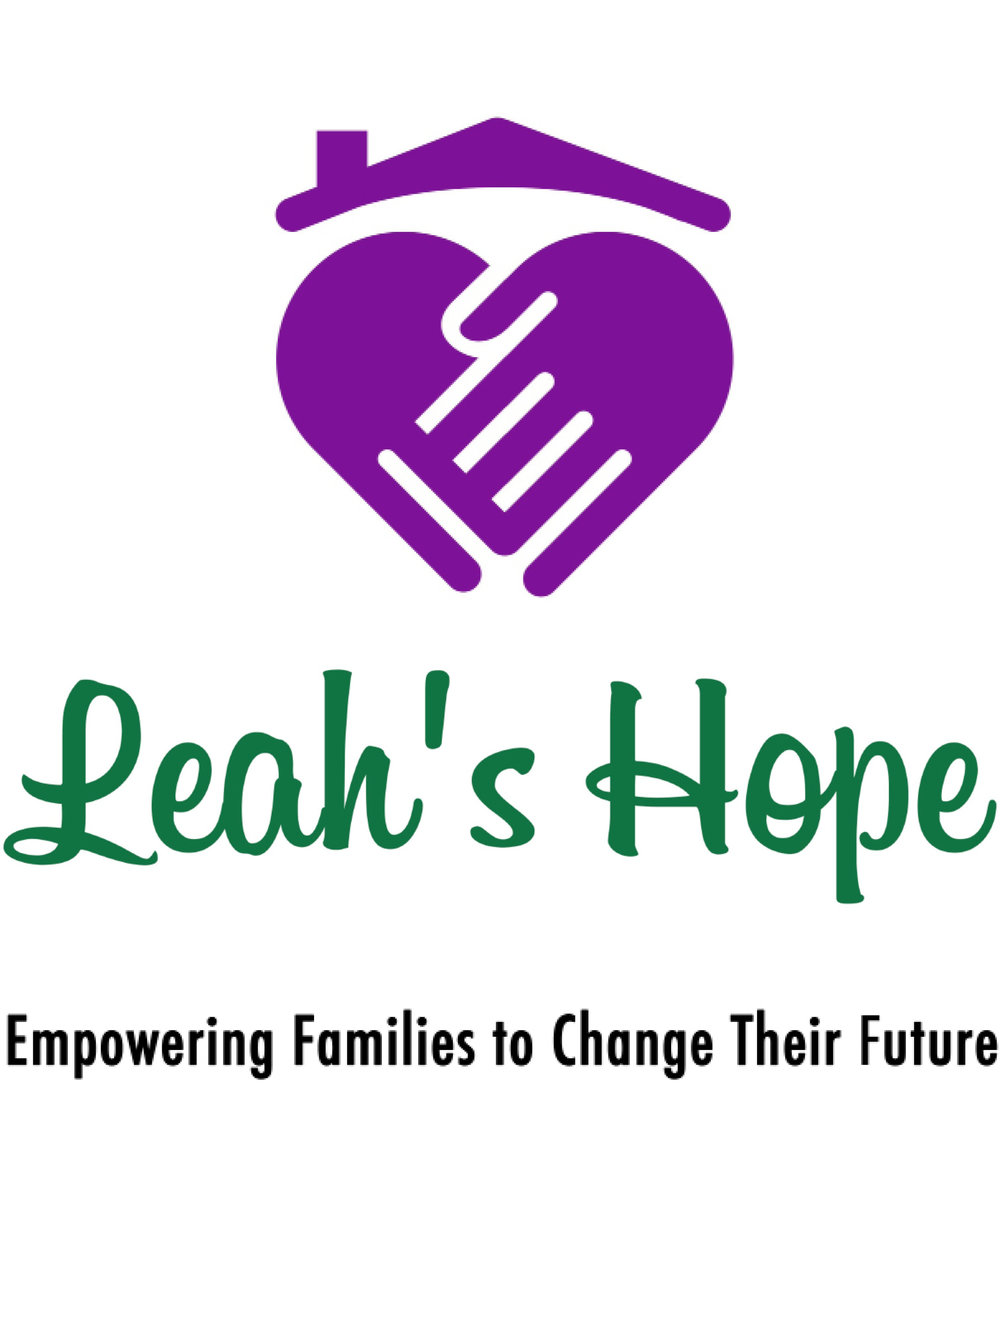 Silent auctiontobenefitLEAH'S HOPE! - Joyful, inviting, interesting, and tantalizing!All proceeds will go to Leah's Hope and their mission to help families in need!